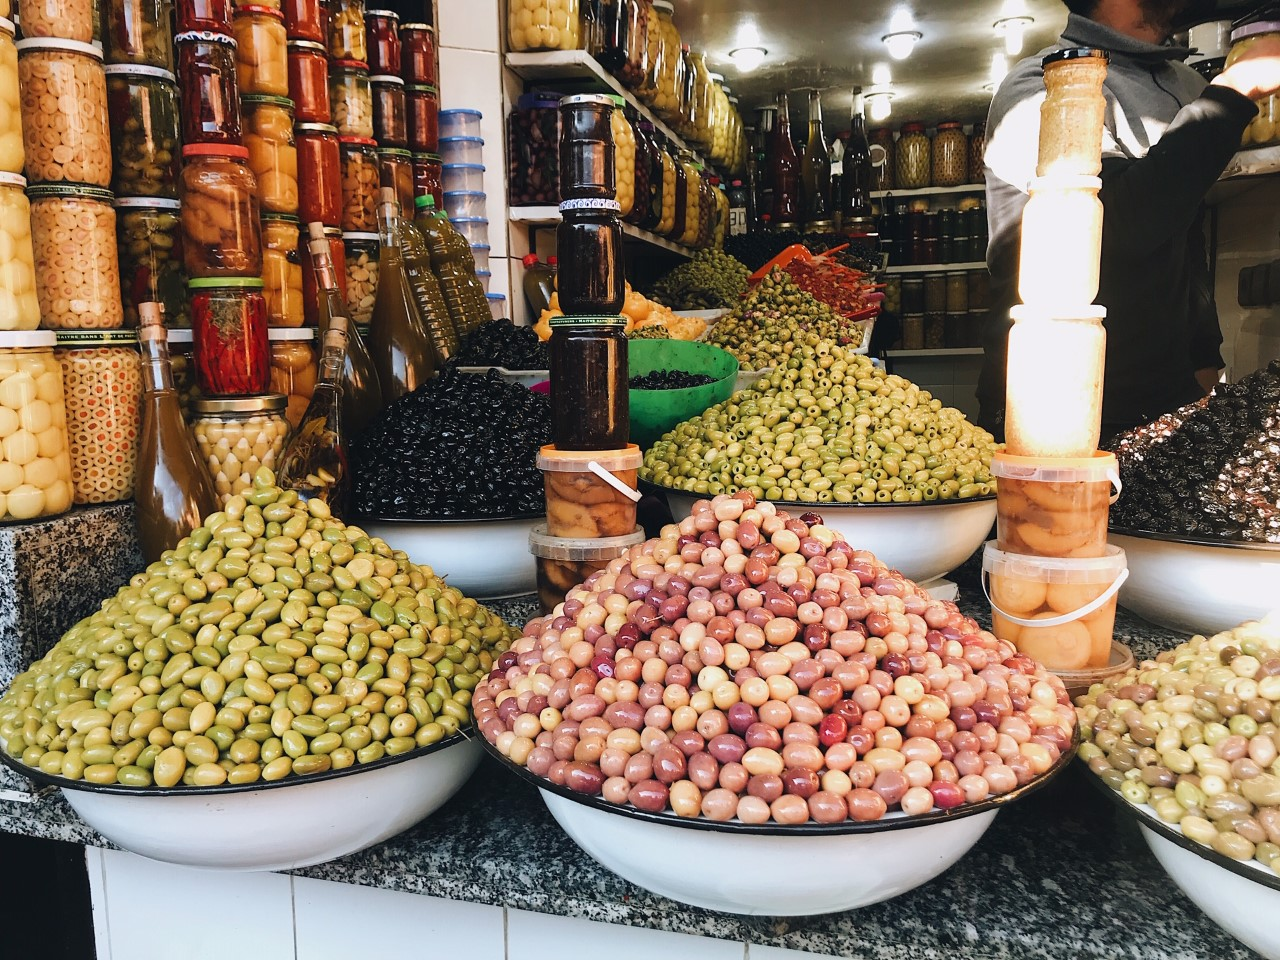 The Souks, Marrakech - discover the best places to see in Marrakesh from this article